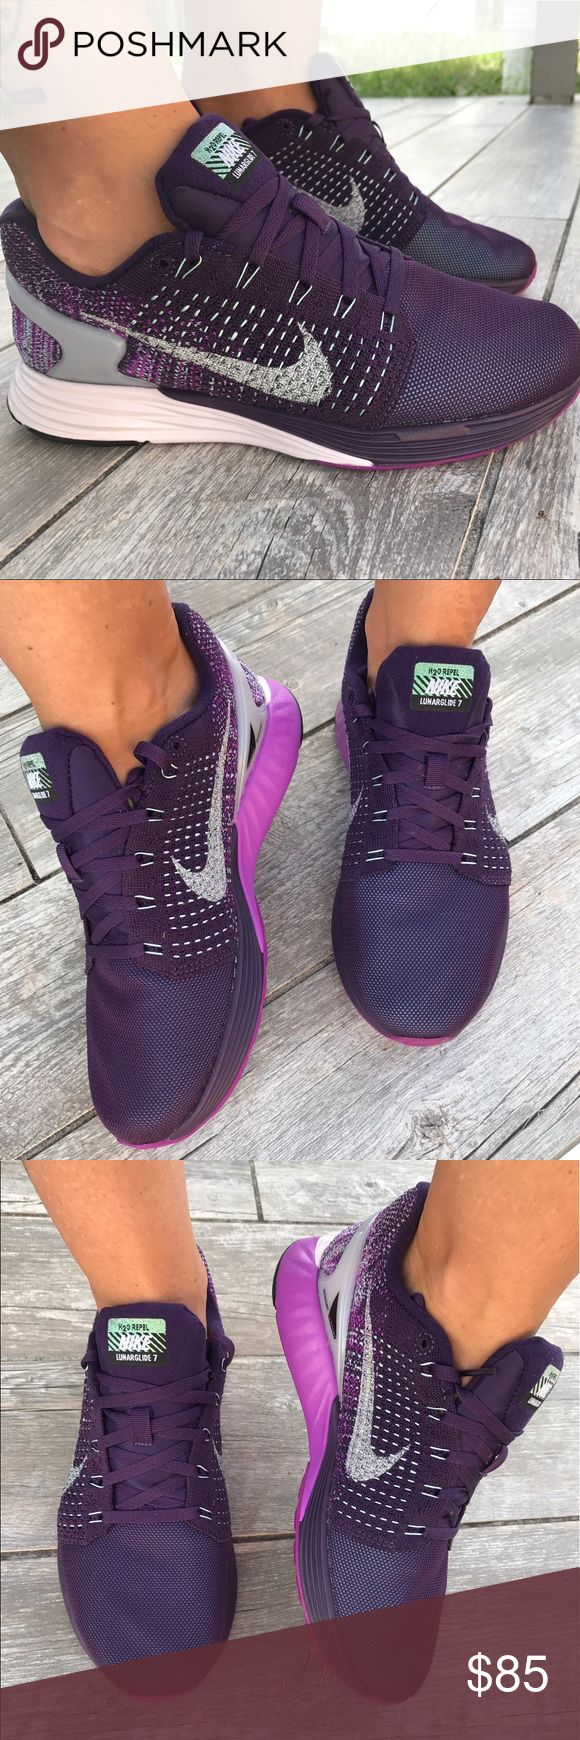 💜Purple mood💜lunarglide 💜Comfortable sneakers Purple mood💜Comfortable sneakers .New lunarglide Nike Shoes Sneakers